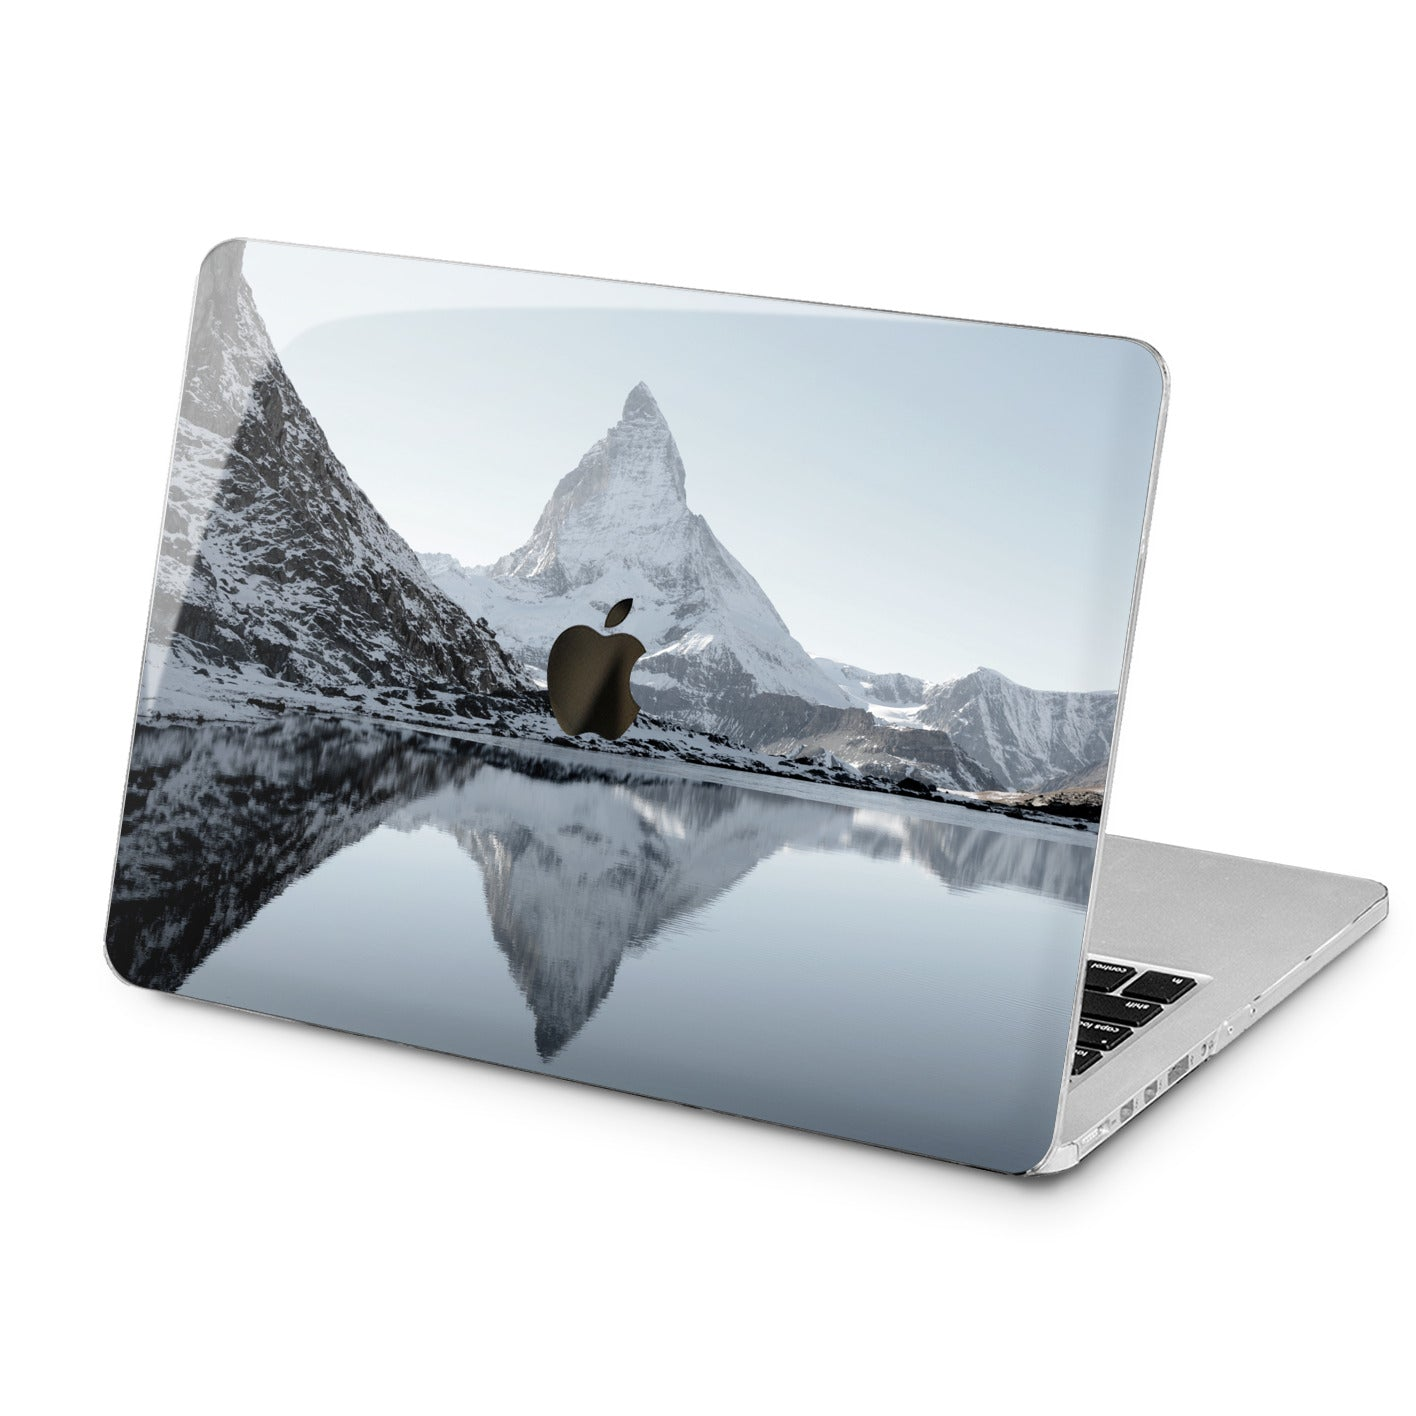 Lex Altern Snowy Mountains Print Case for your Laptop Apple Macbook.